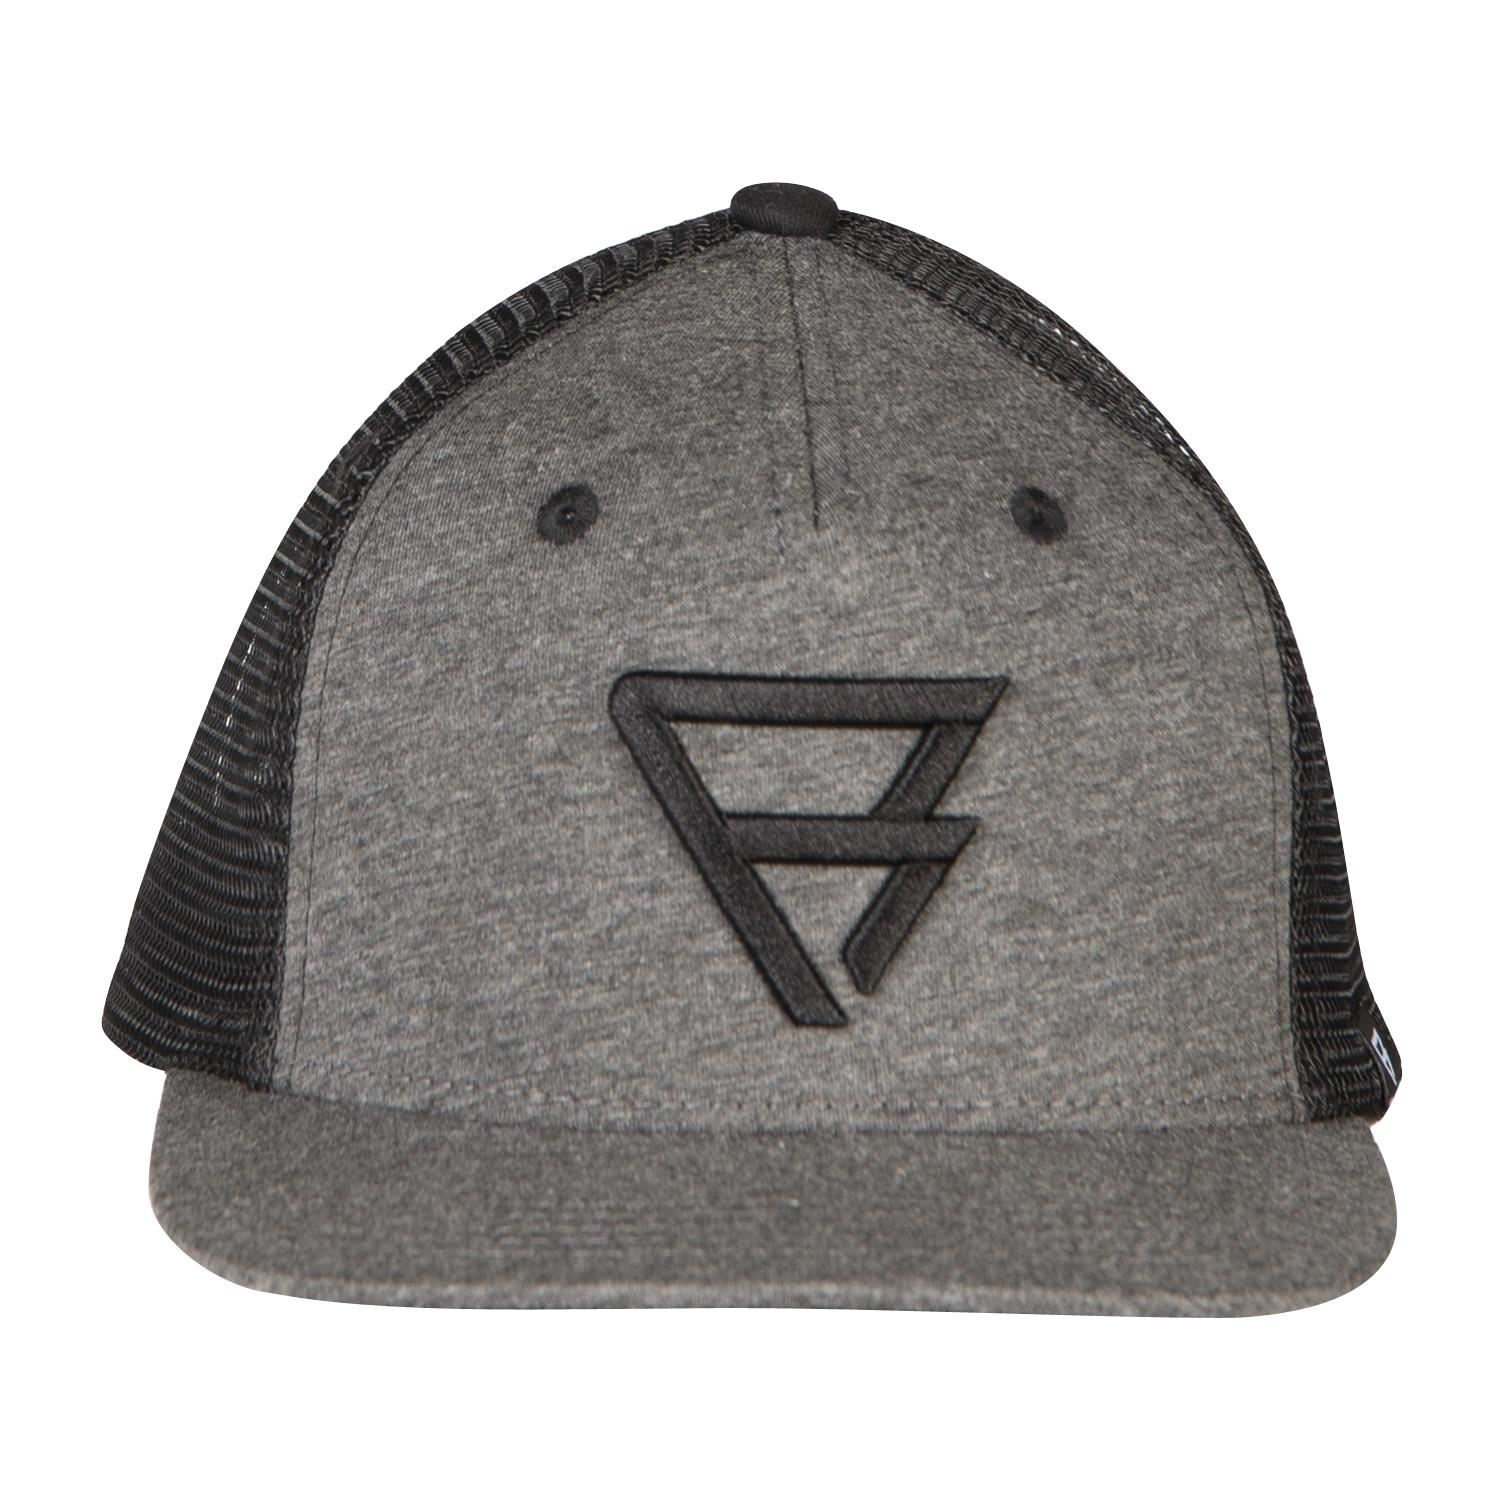 Brunotti Hostiler  (grijs) - heren caps - Brunotti online shop